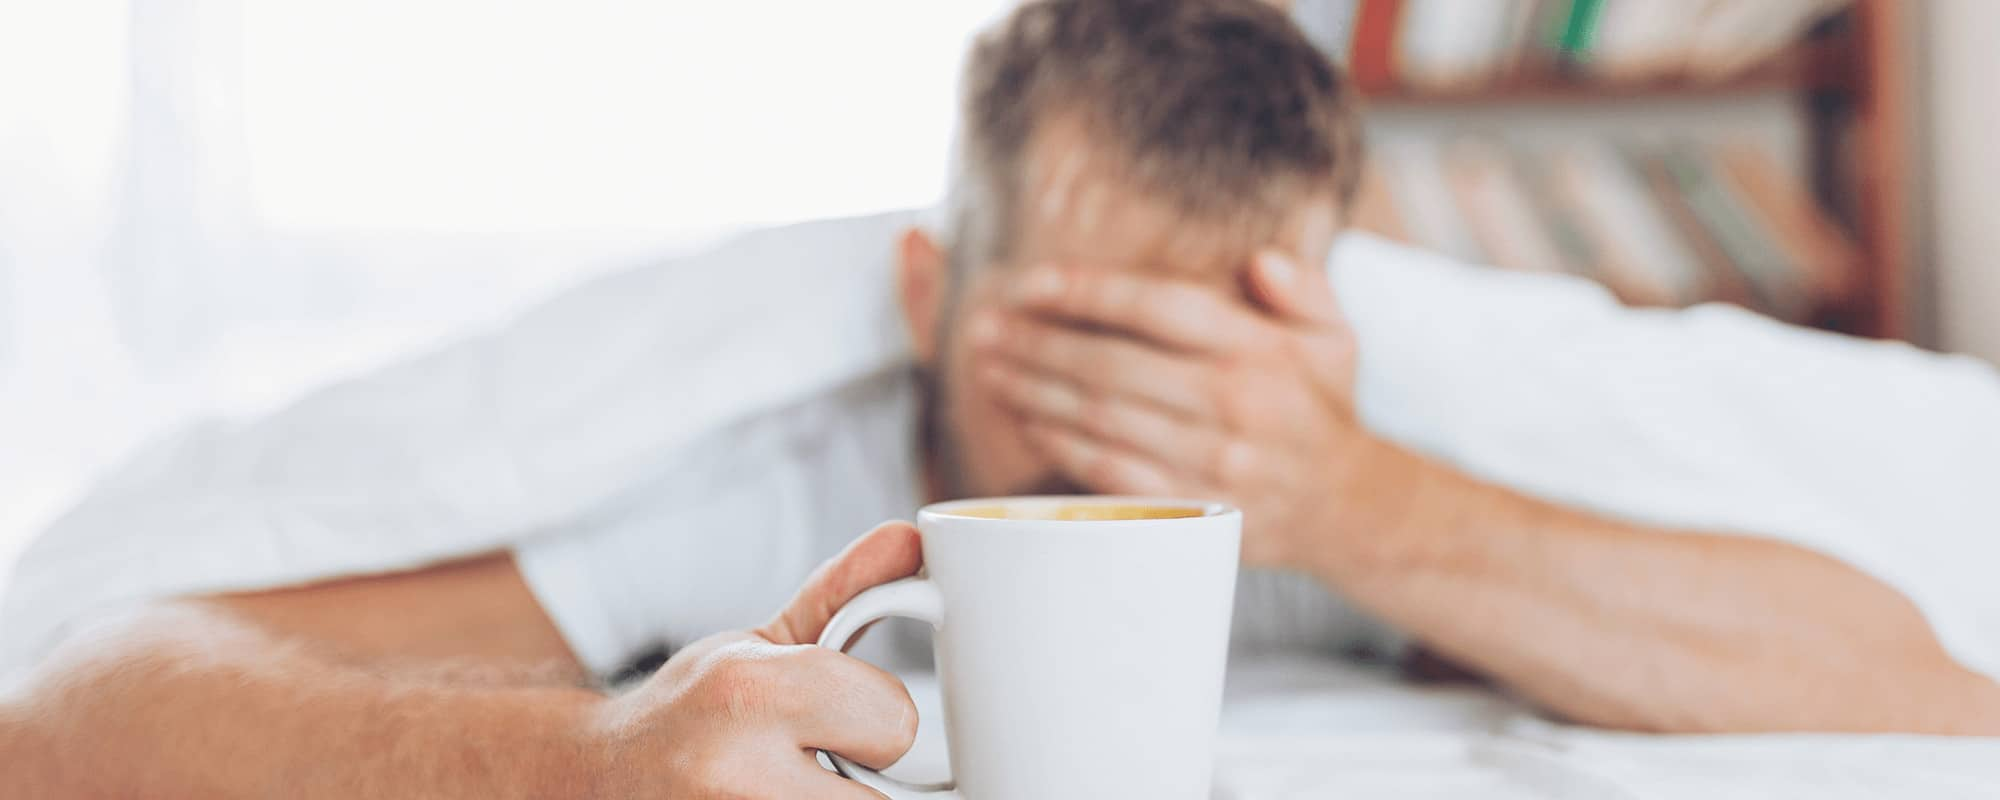 Is Black Coffee a Hangover Cure?